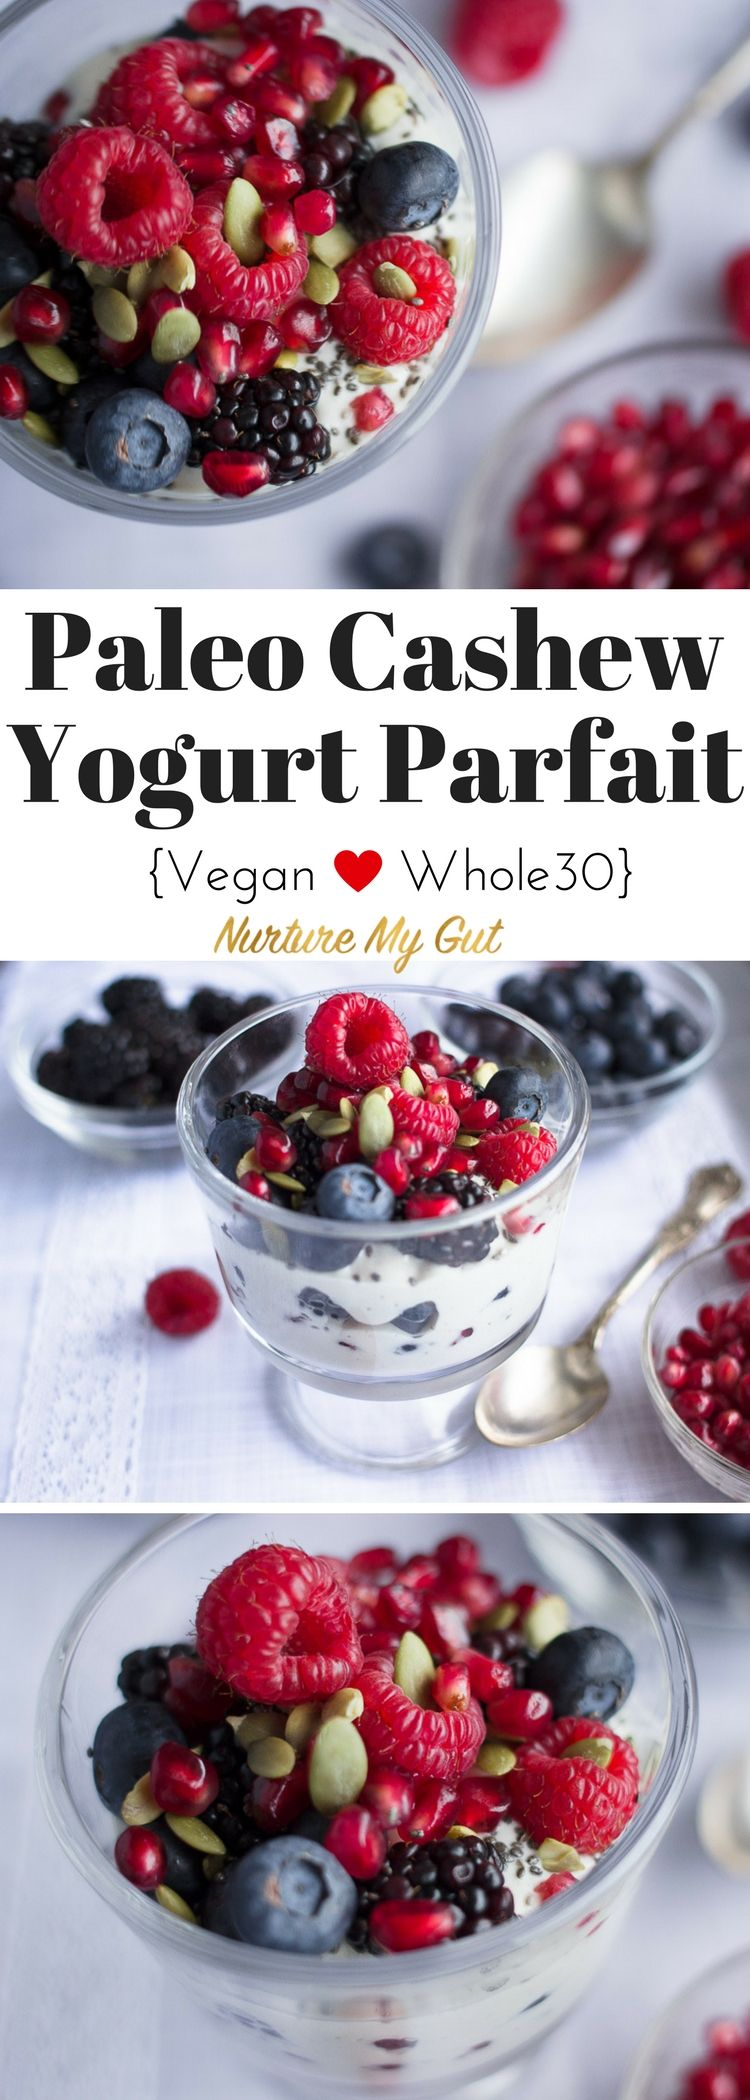 This irresistible Paleo Cashew Yogurt Parfait is layered with Homemade Cashew Yogurt, chia & pumpkin seeds, mixed berries and pomegranate seeds.  It is bursting with flavor, full of anti-oxidants and insanely healthy!  Vegan, Whole30 friendly, Paleo and gluten free.